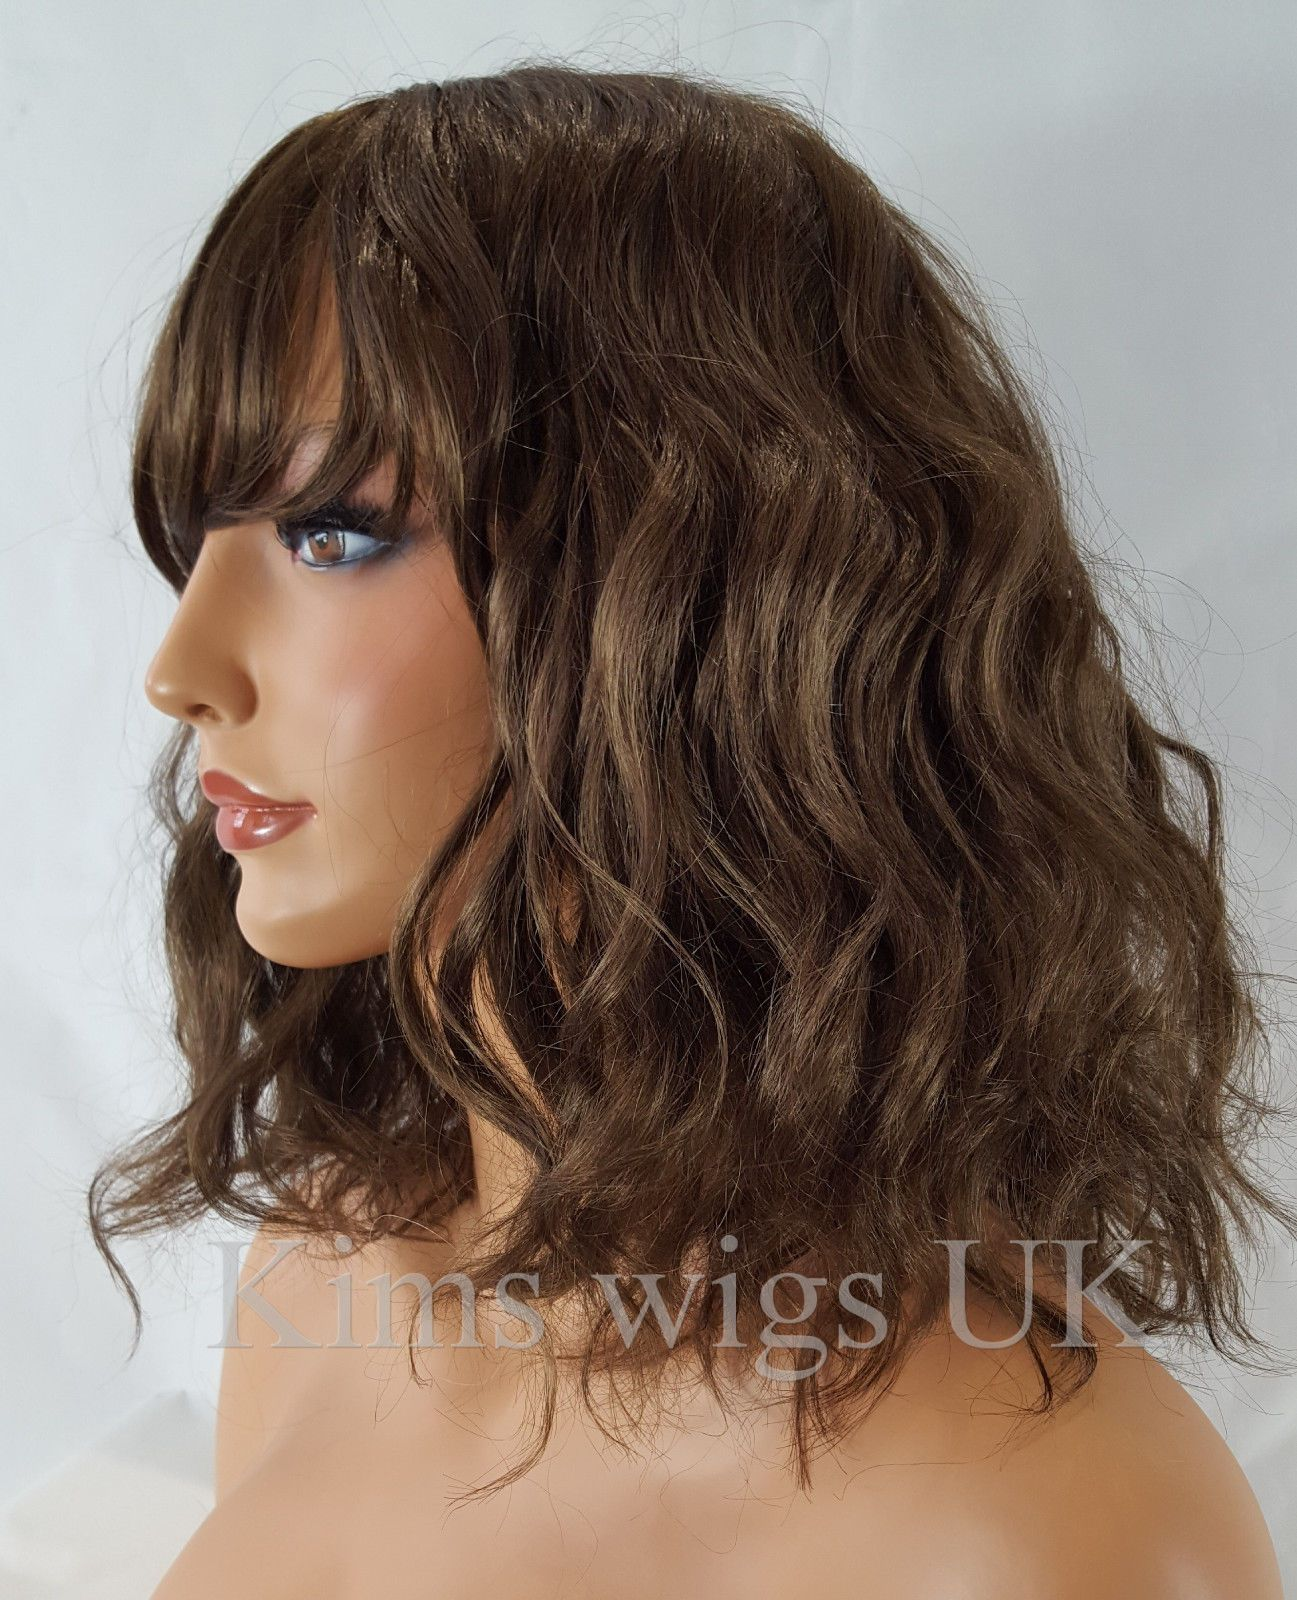 Amanda Medium Brown Shoulder Length Wavy Bob Wig